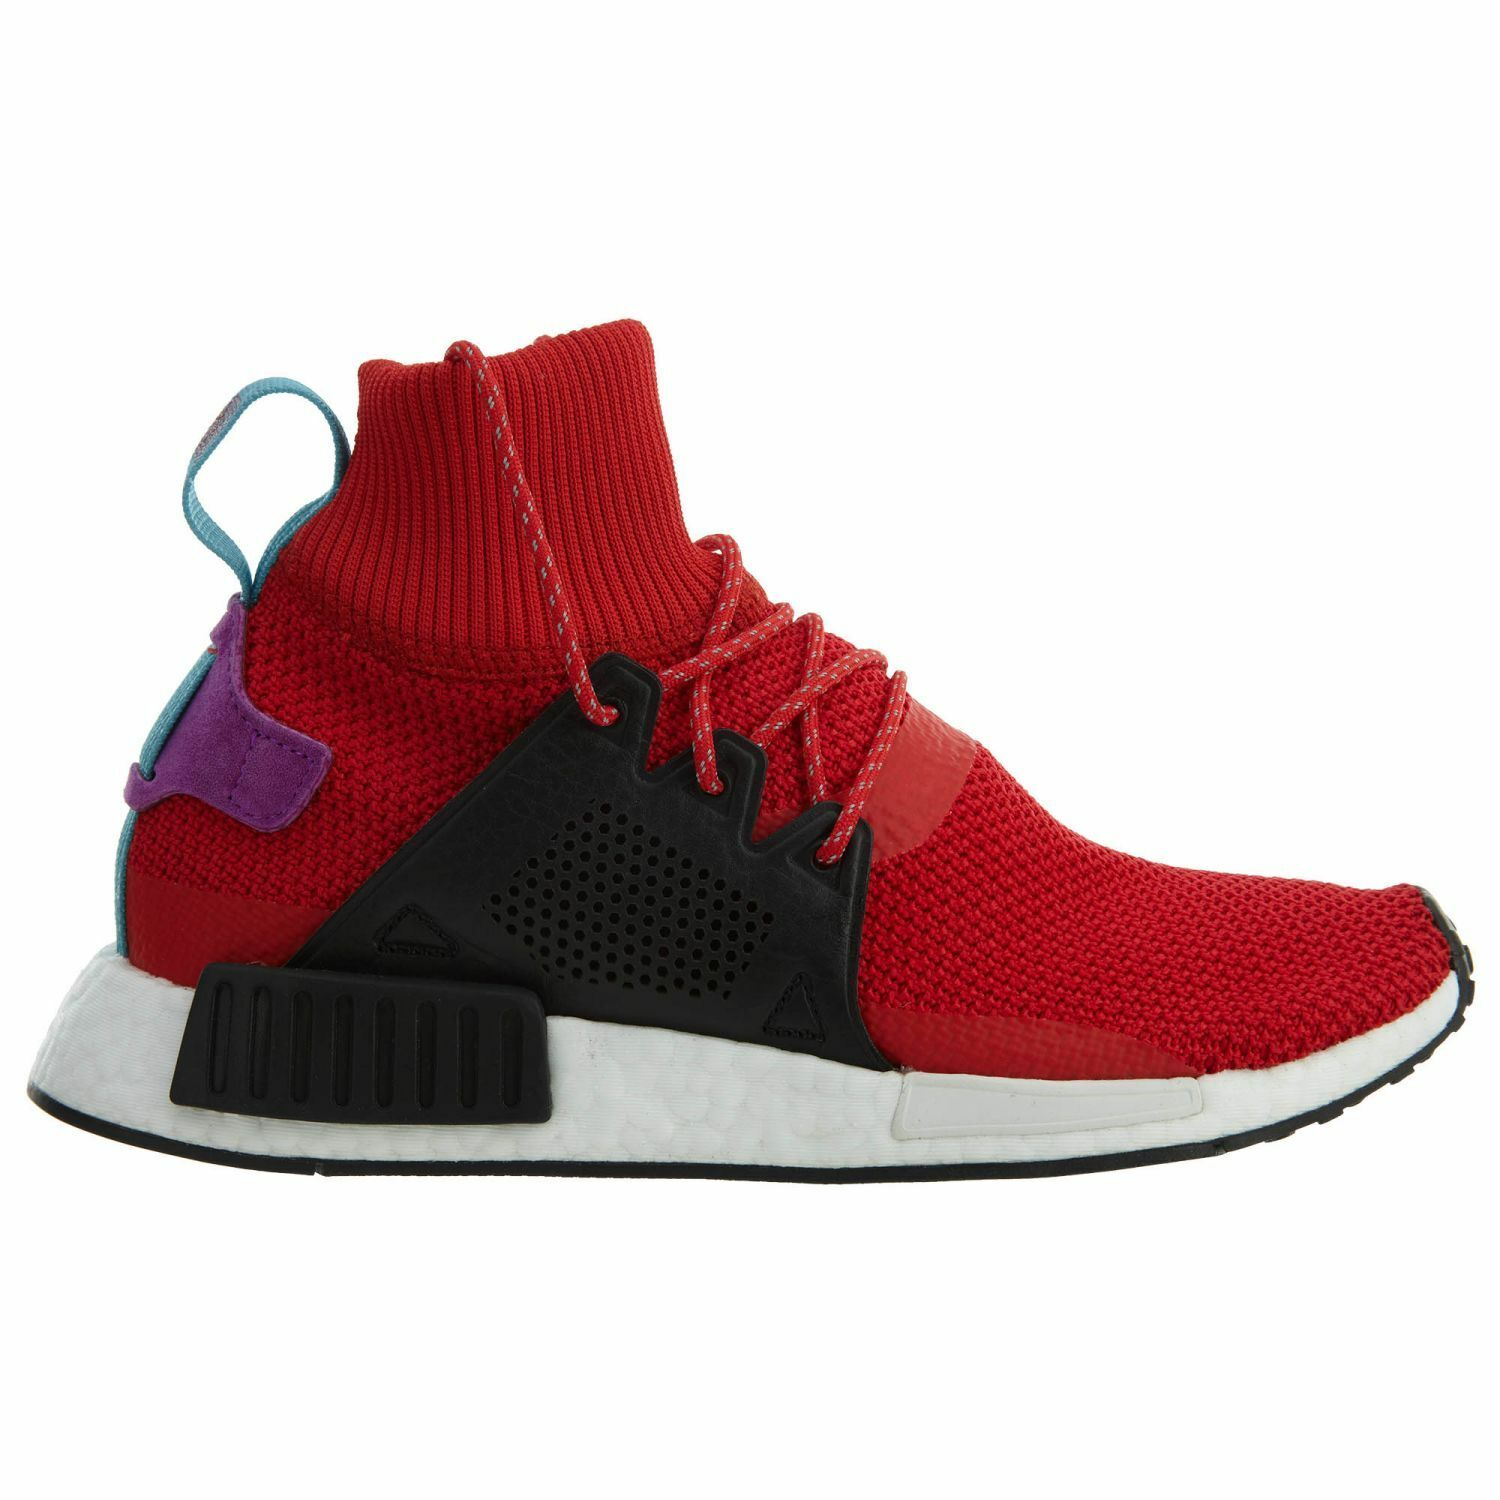 4ea95db8accb Adidas Nmd XR1 Winter Mens BZ0632 Red Black Boost Boost Boost Roller Knit  shoes Size 10 799e2b